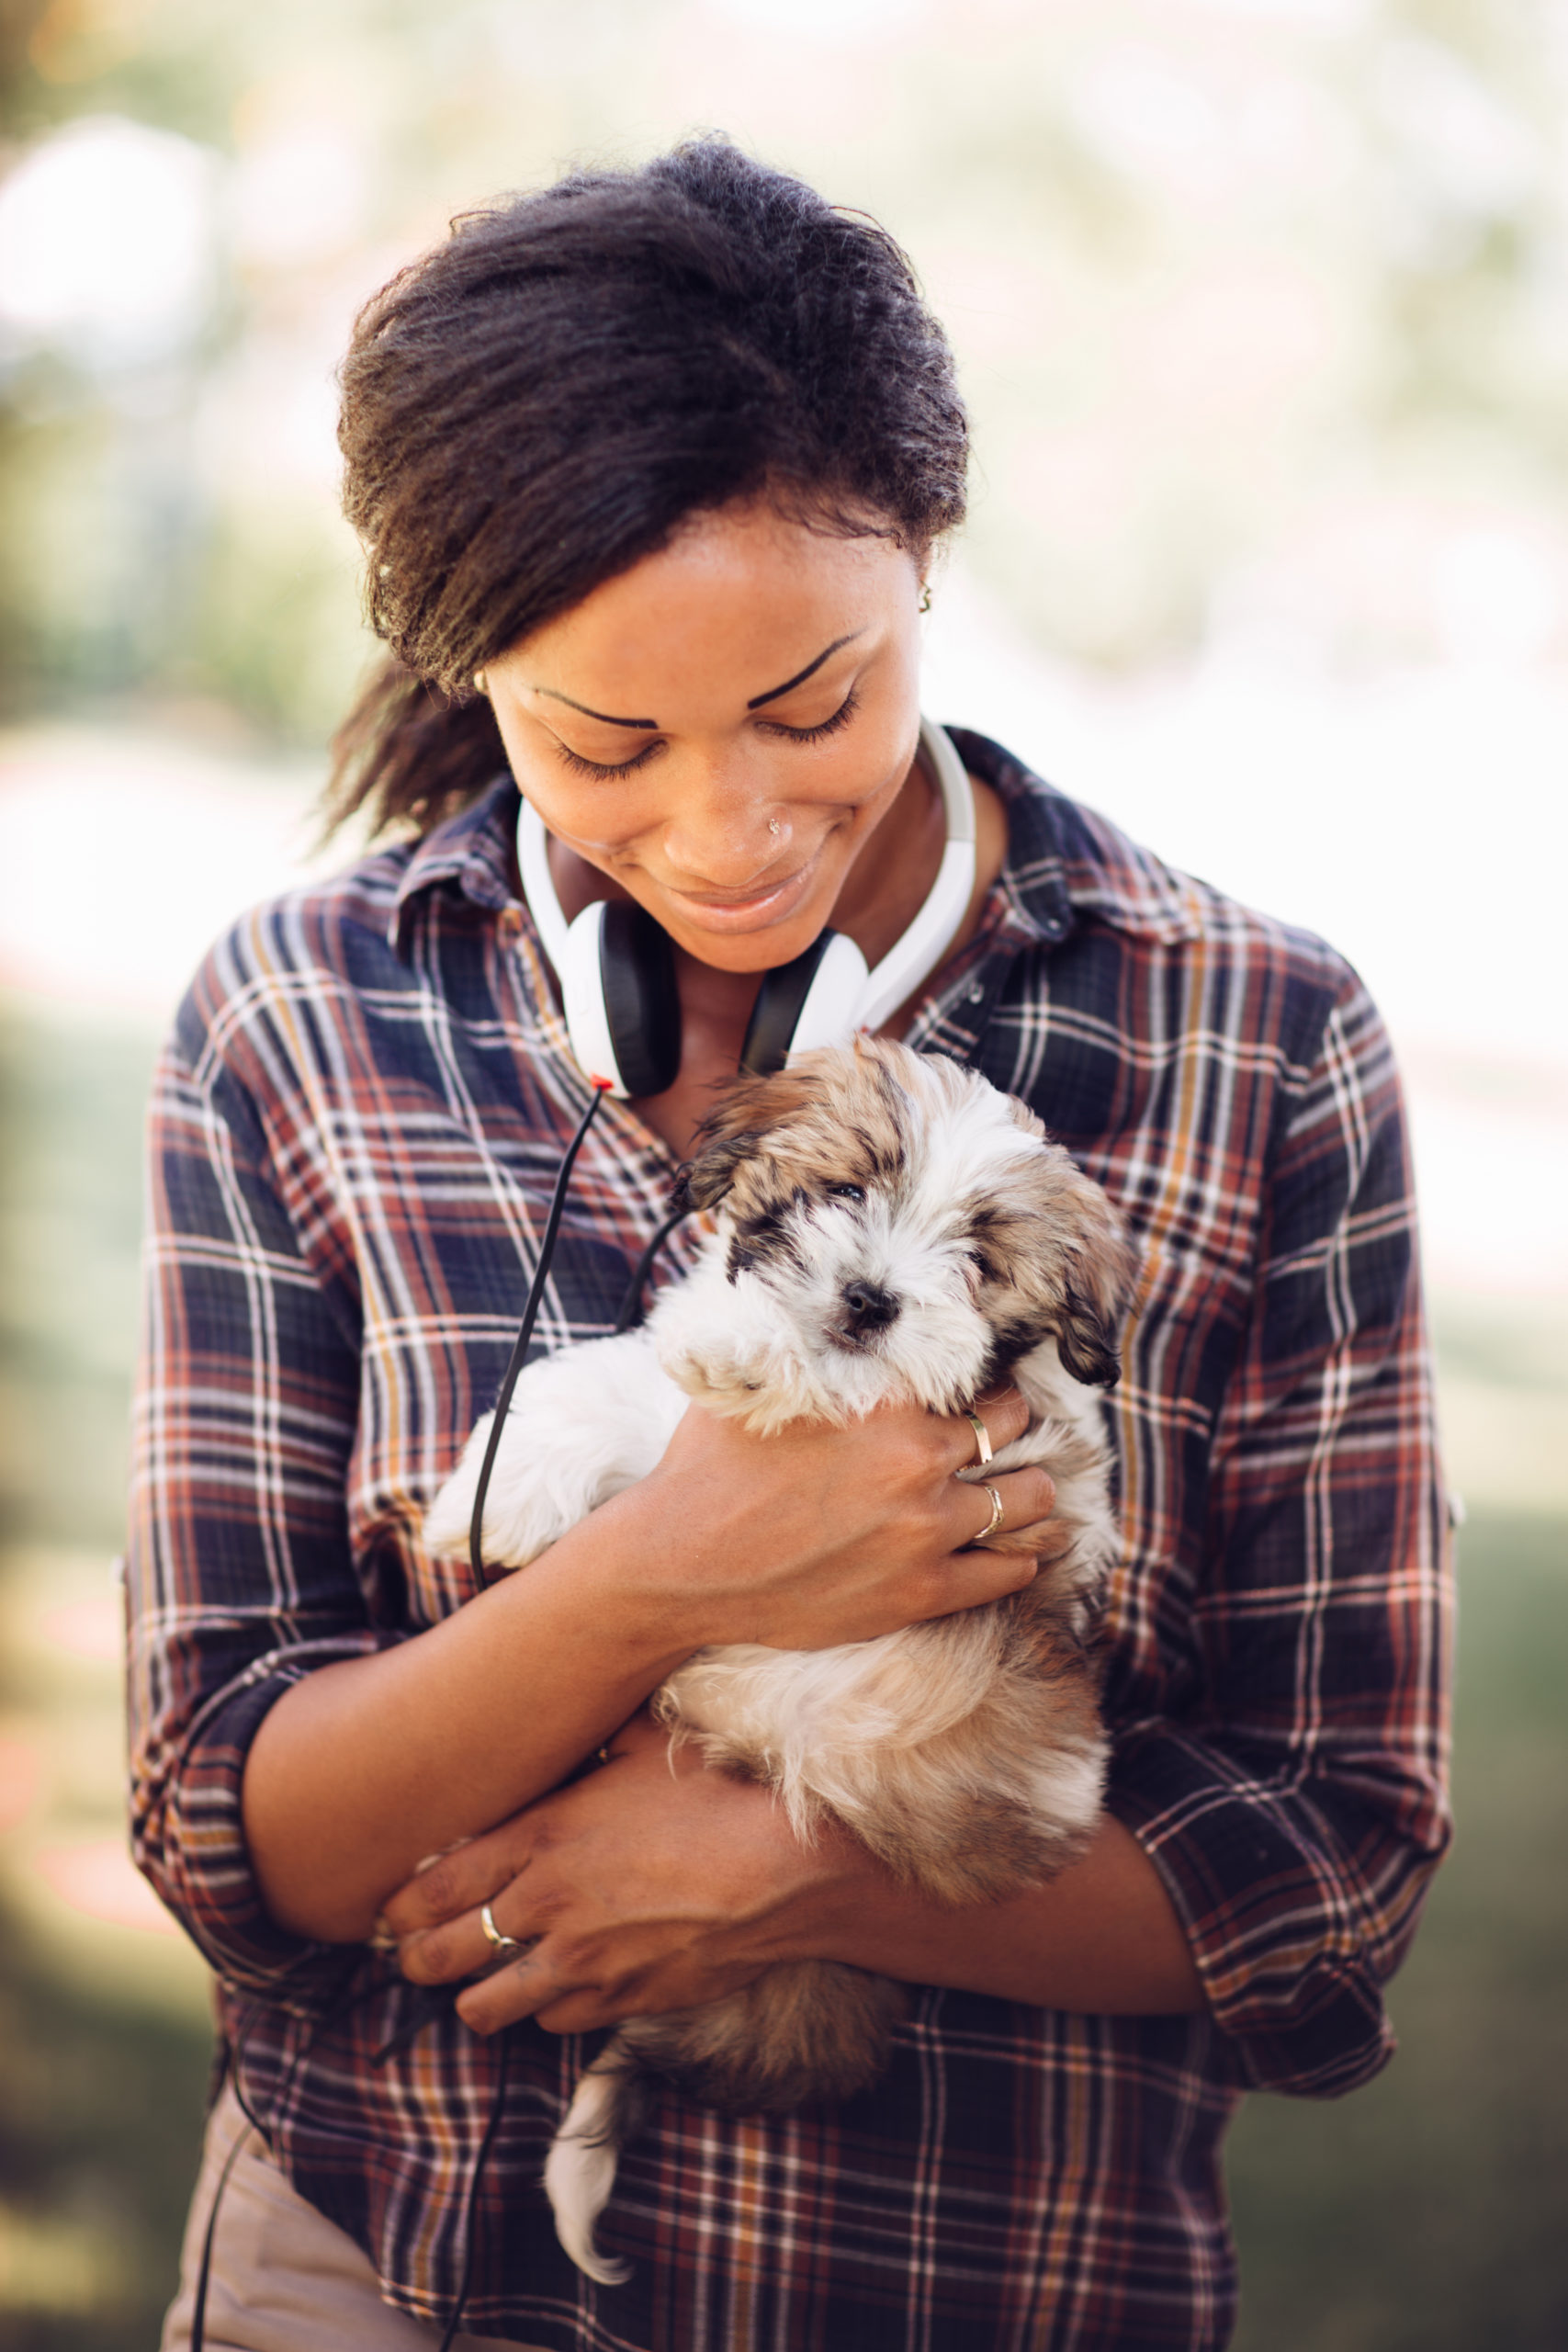 The Importance of Puppy Socialization